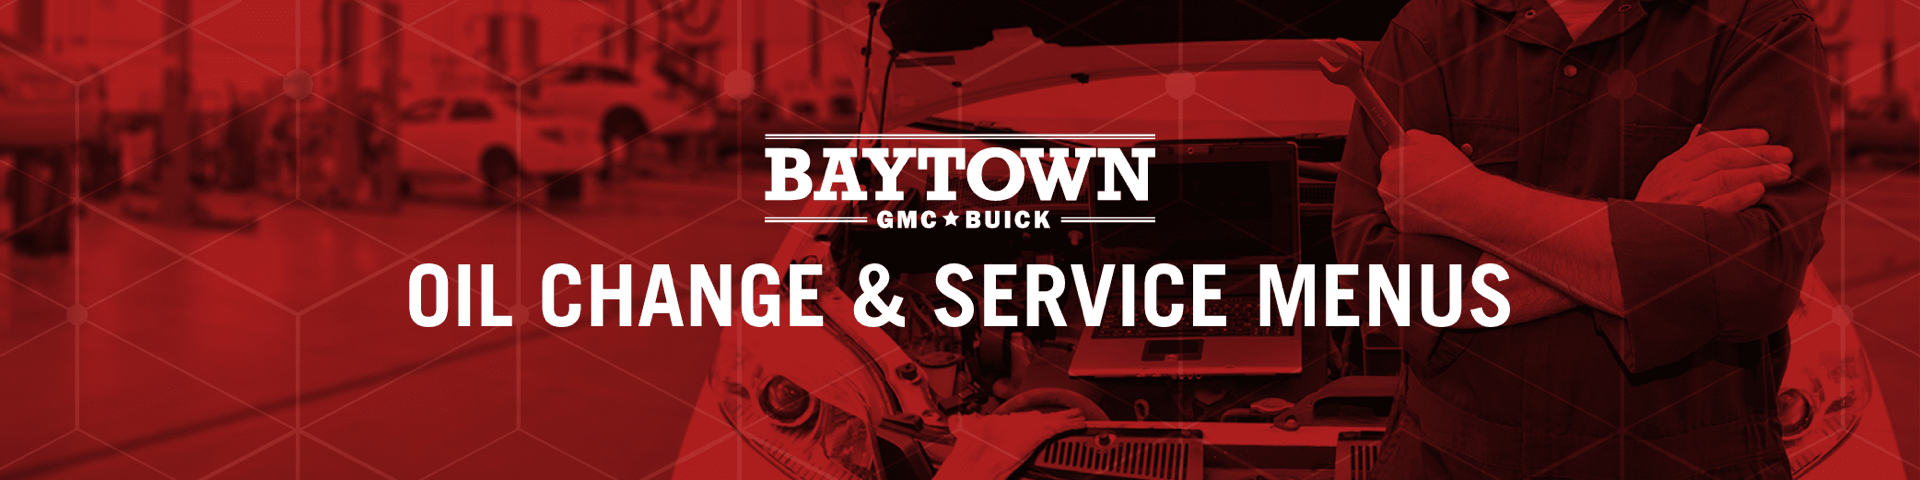 Baytown Oil Change